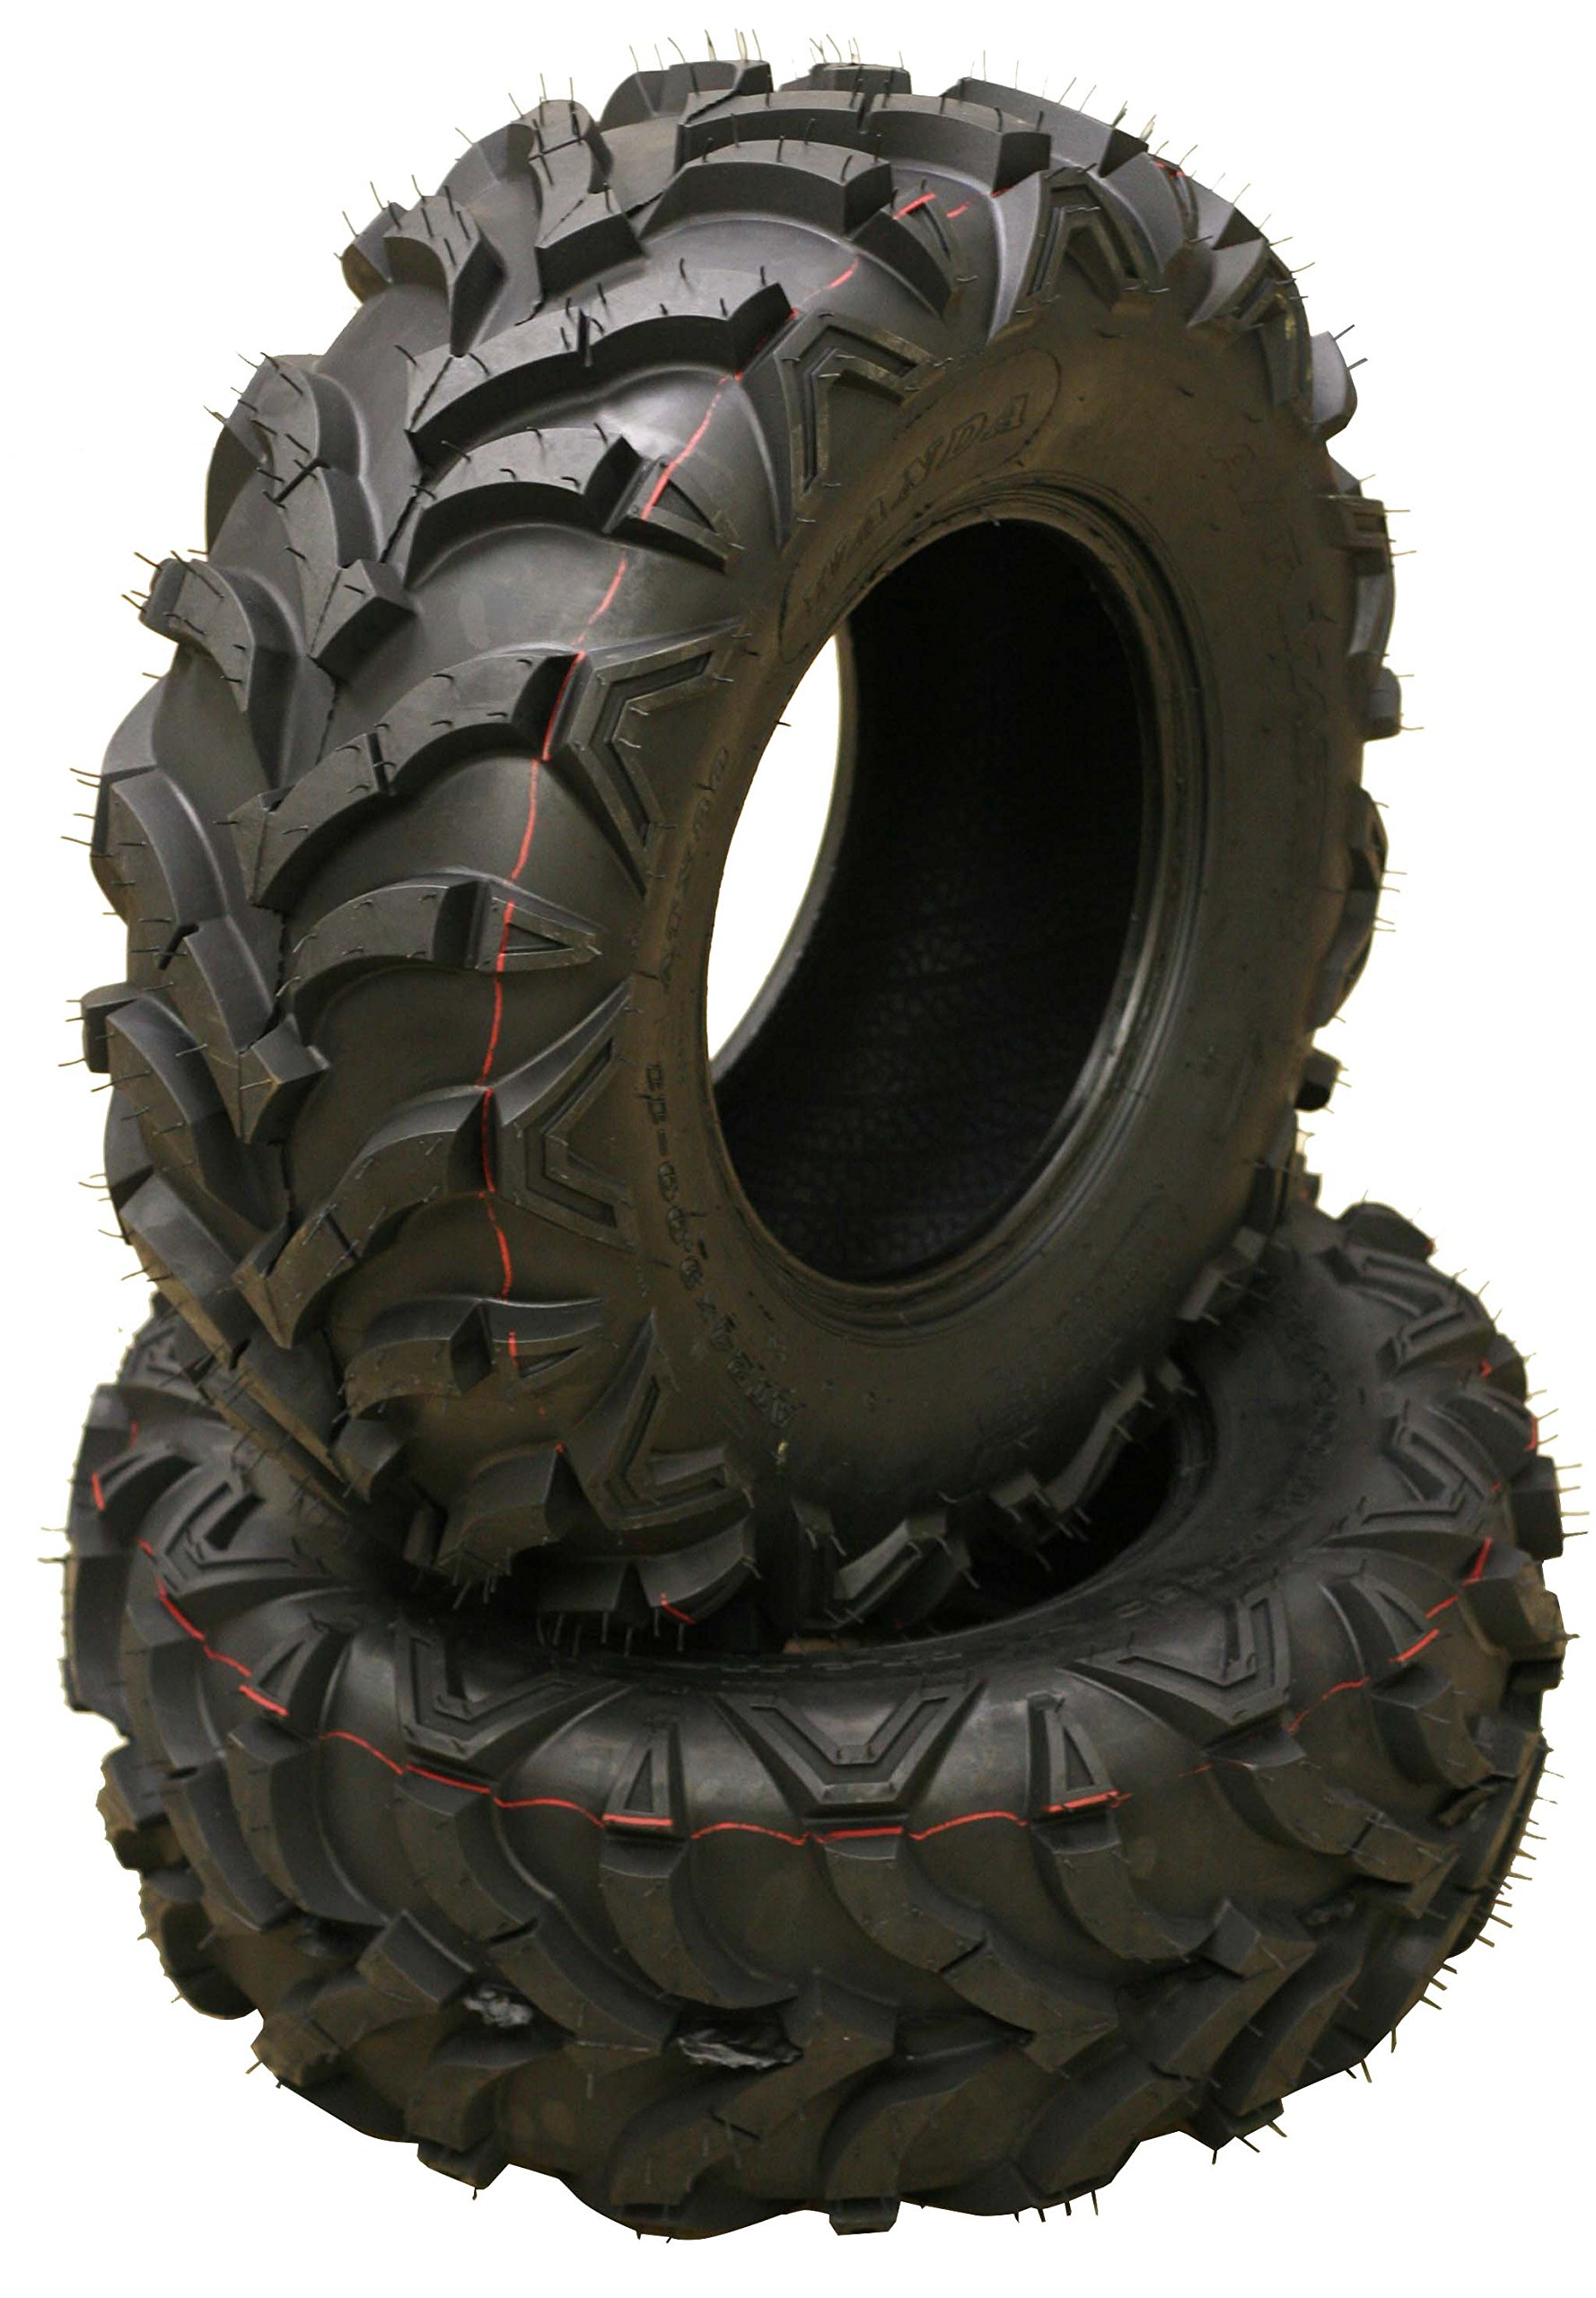 Set 2 front ATV Mud Tires 22x7-11 22X7X11 6PR for Honda Recon 250 Suzuki Ozark 250